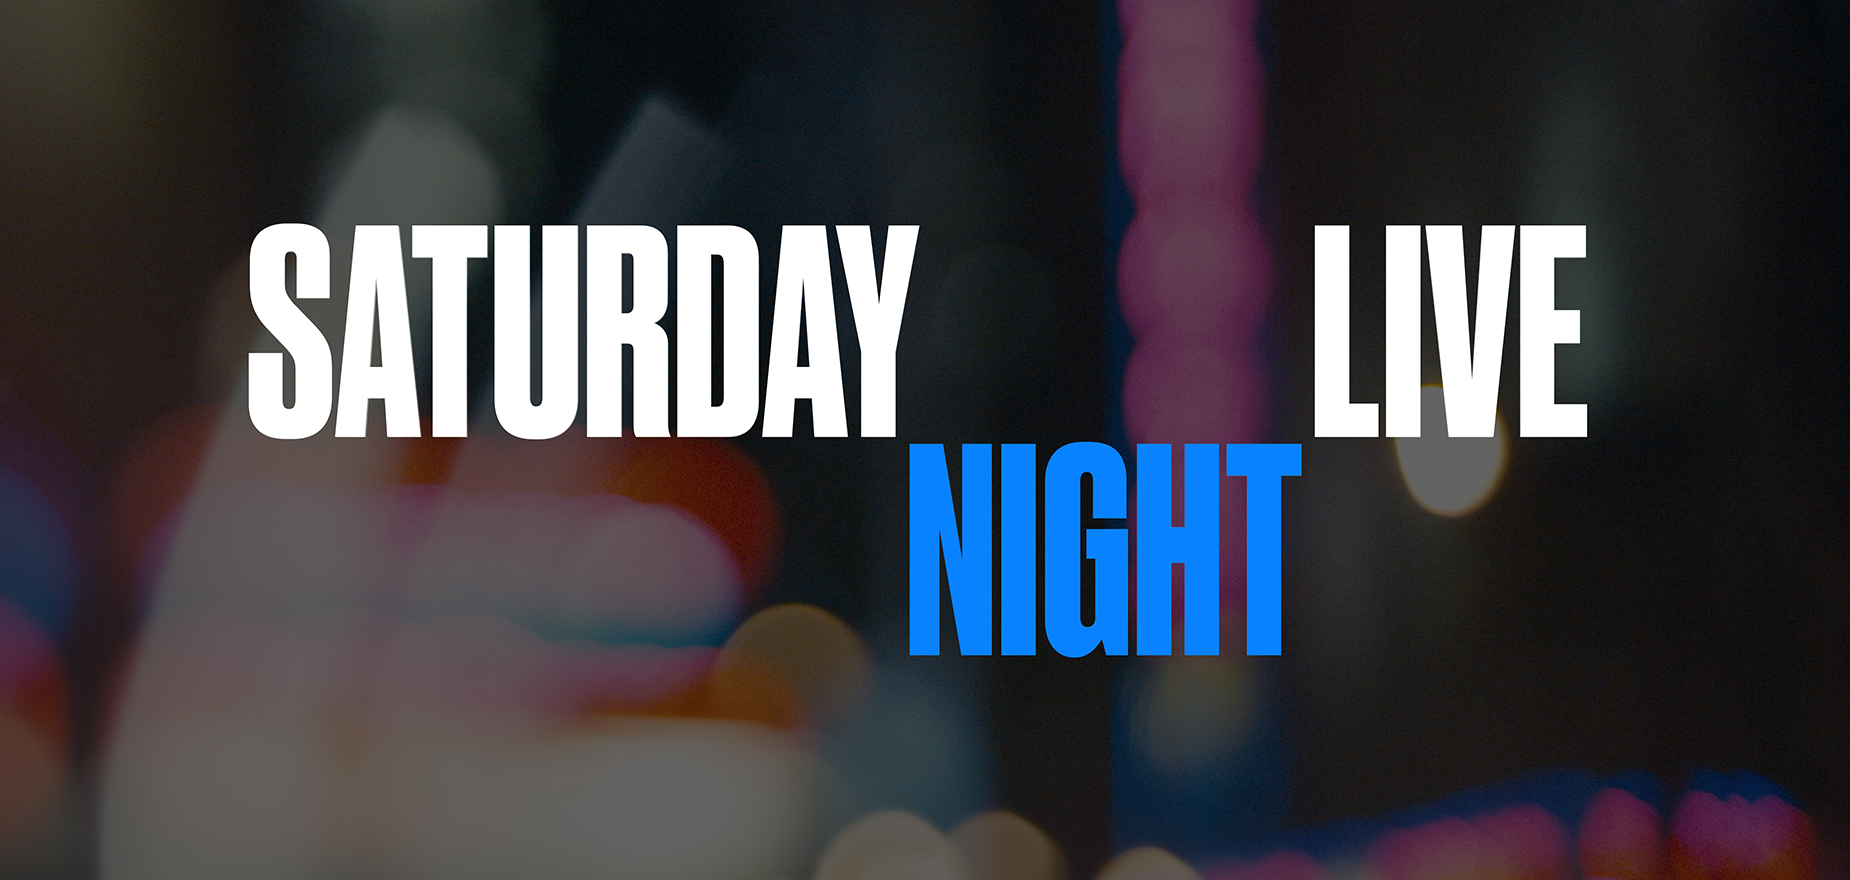 Saturday Night Live: Political Satire 2017 - SNL Studios in association with Universal Television and Broadway Video